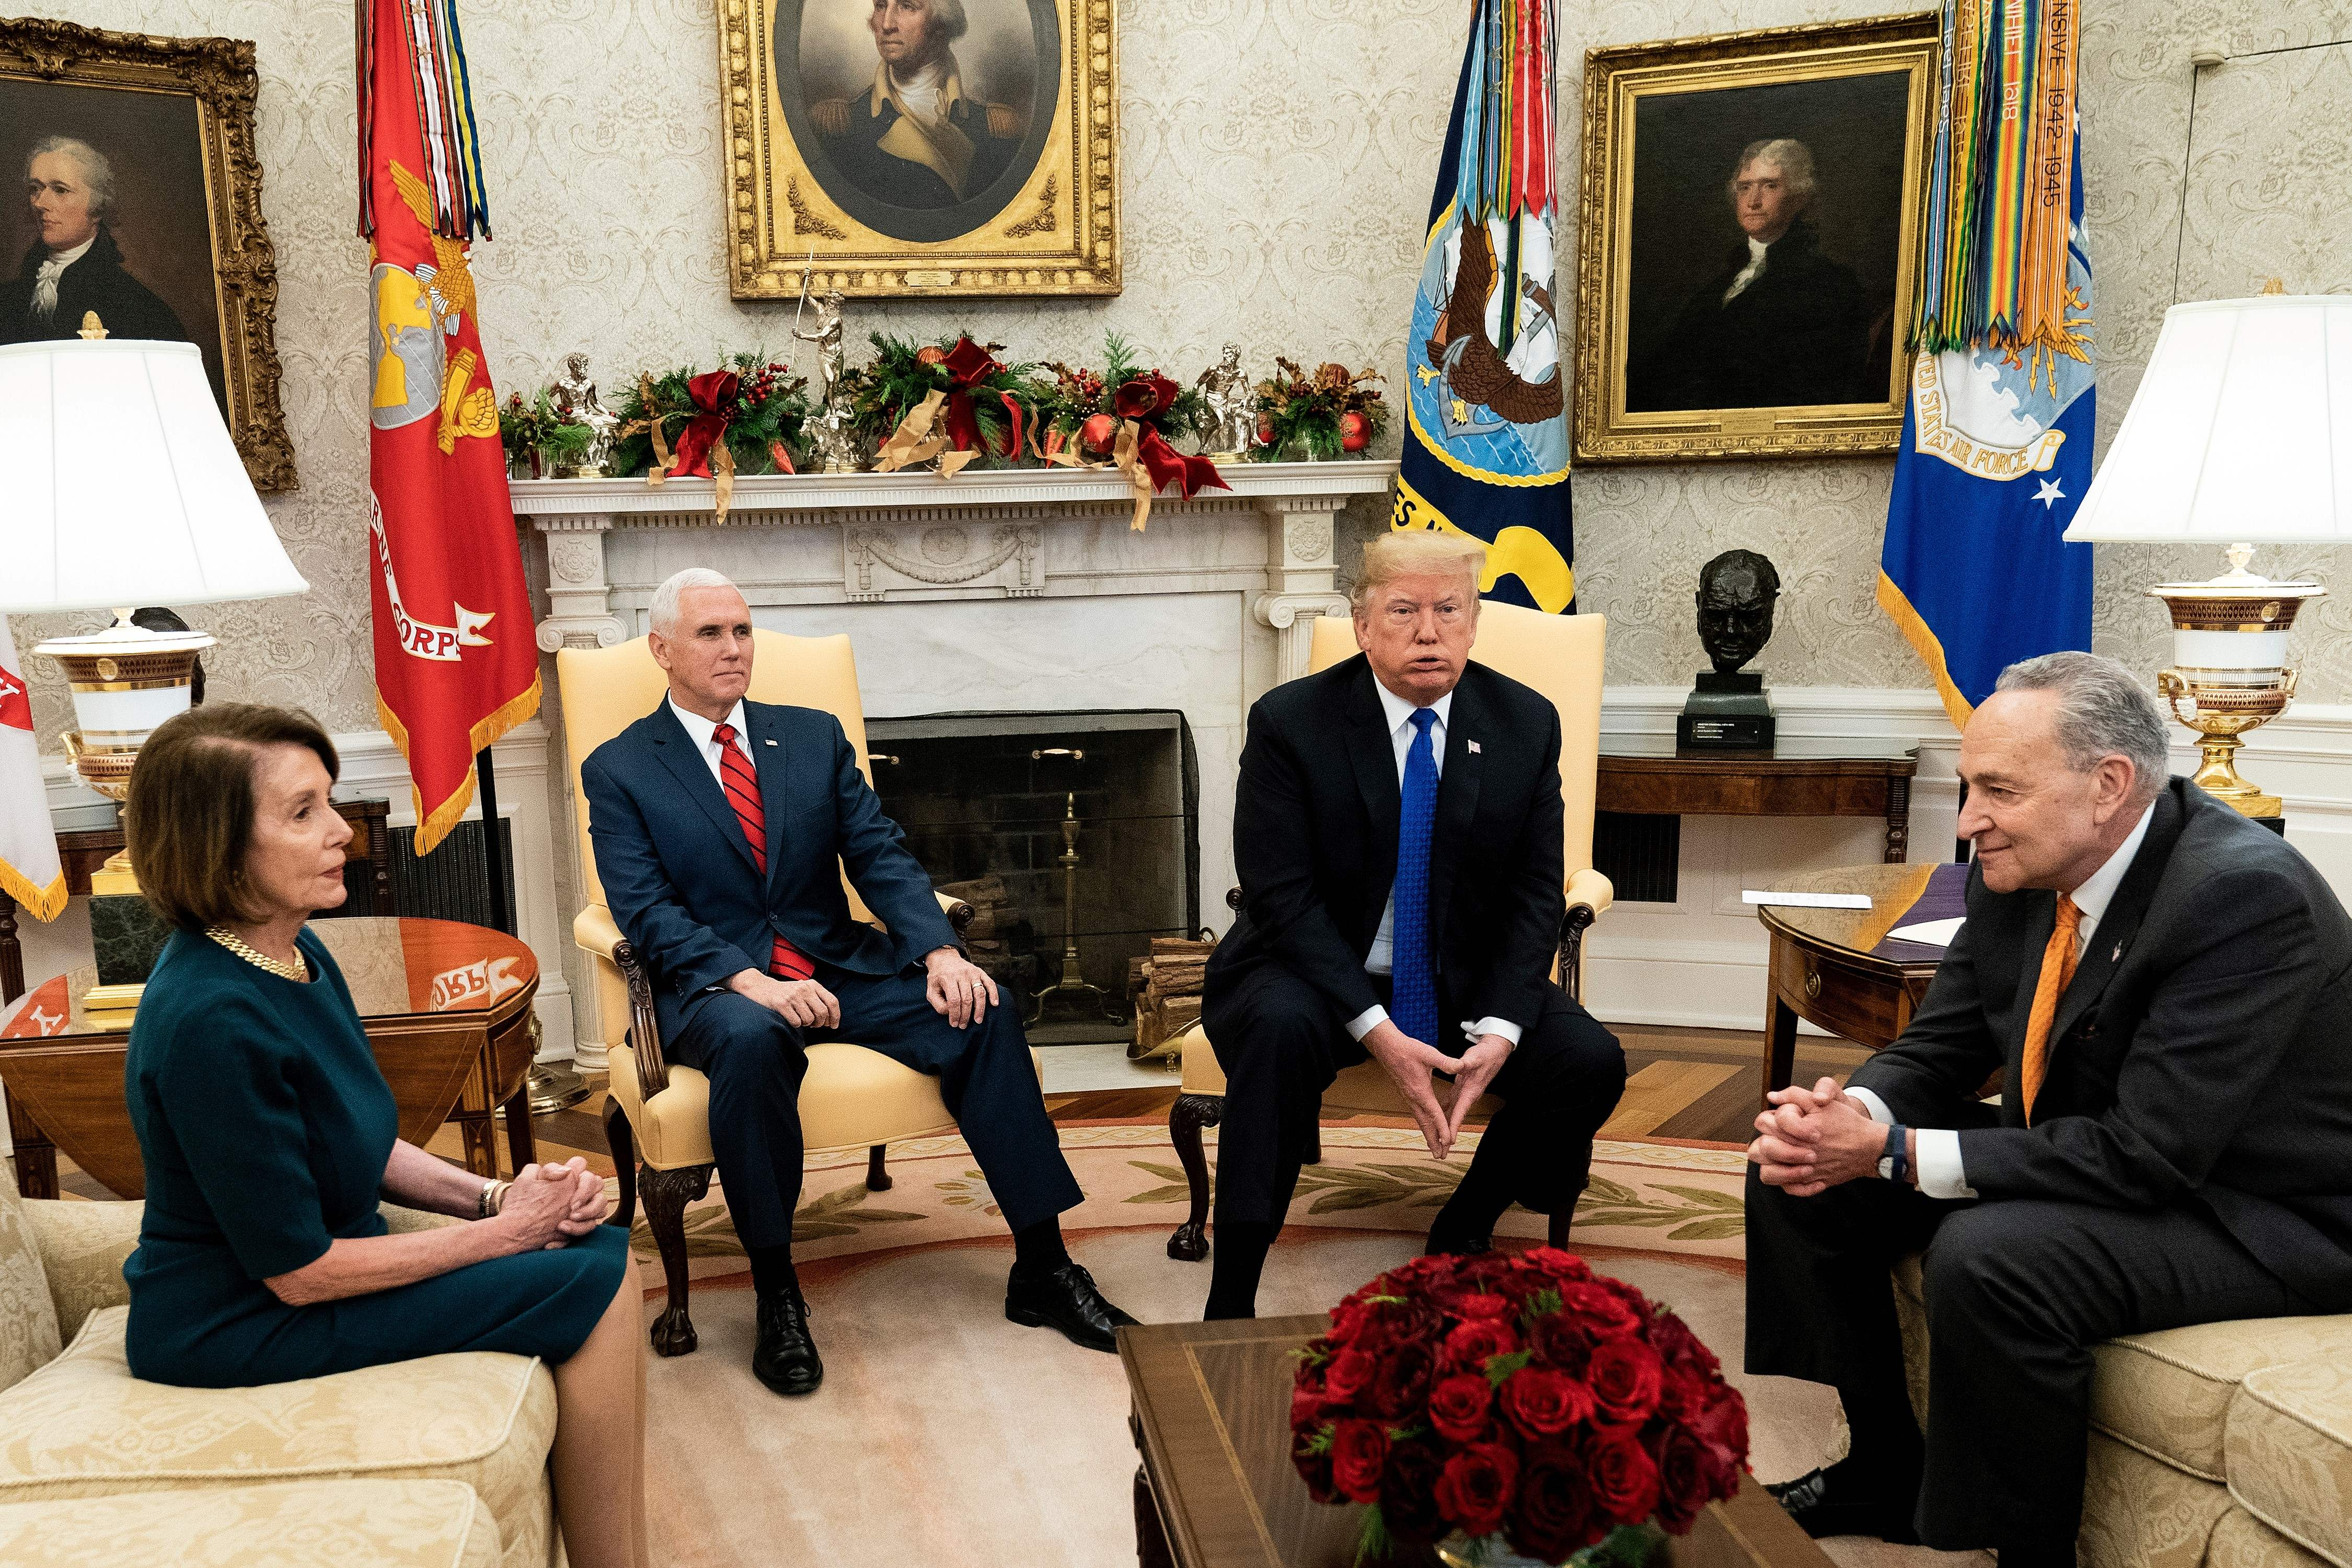 Nancy Pelosi, VP Mike Pence, President Donald Trump, and Senate Minority Leader Charles Schumer wait for a meeting at the White House (Brendan Smialowski/AFP/Getty Images)